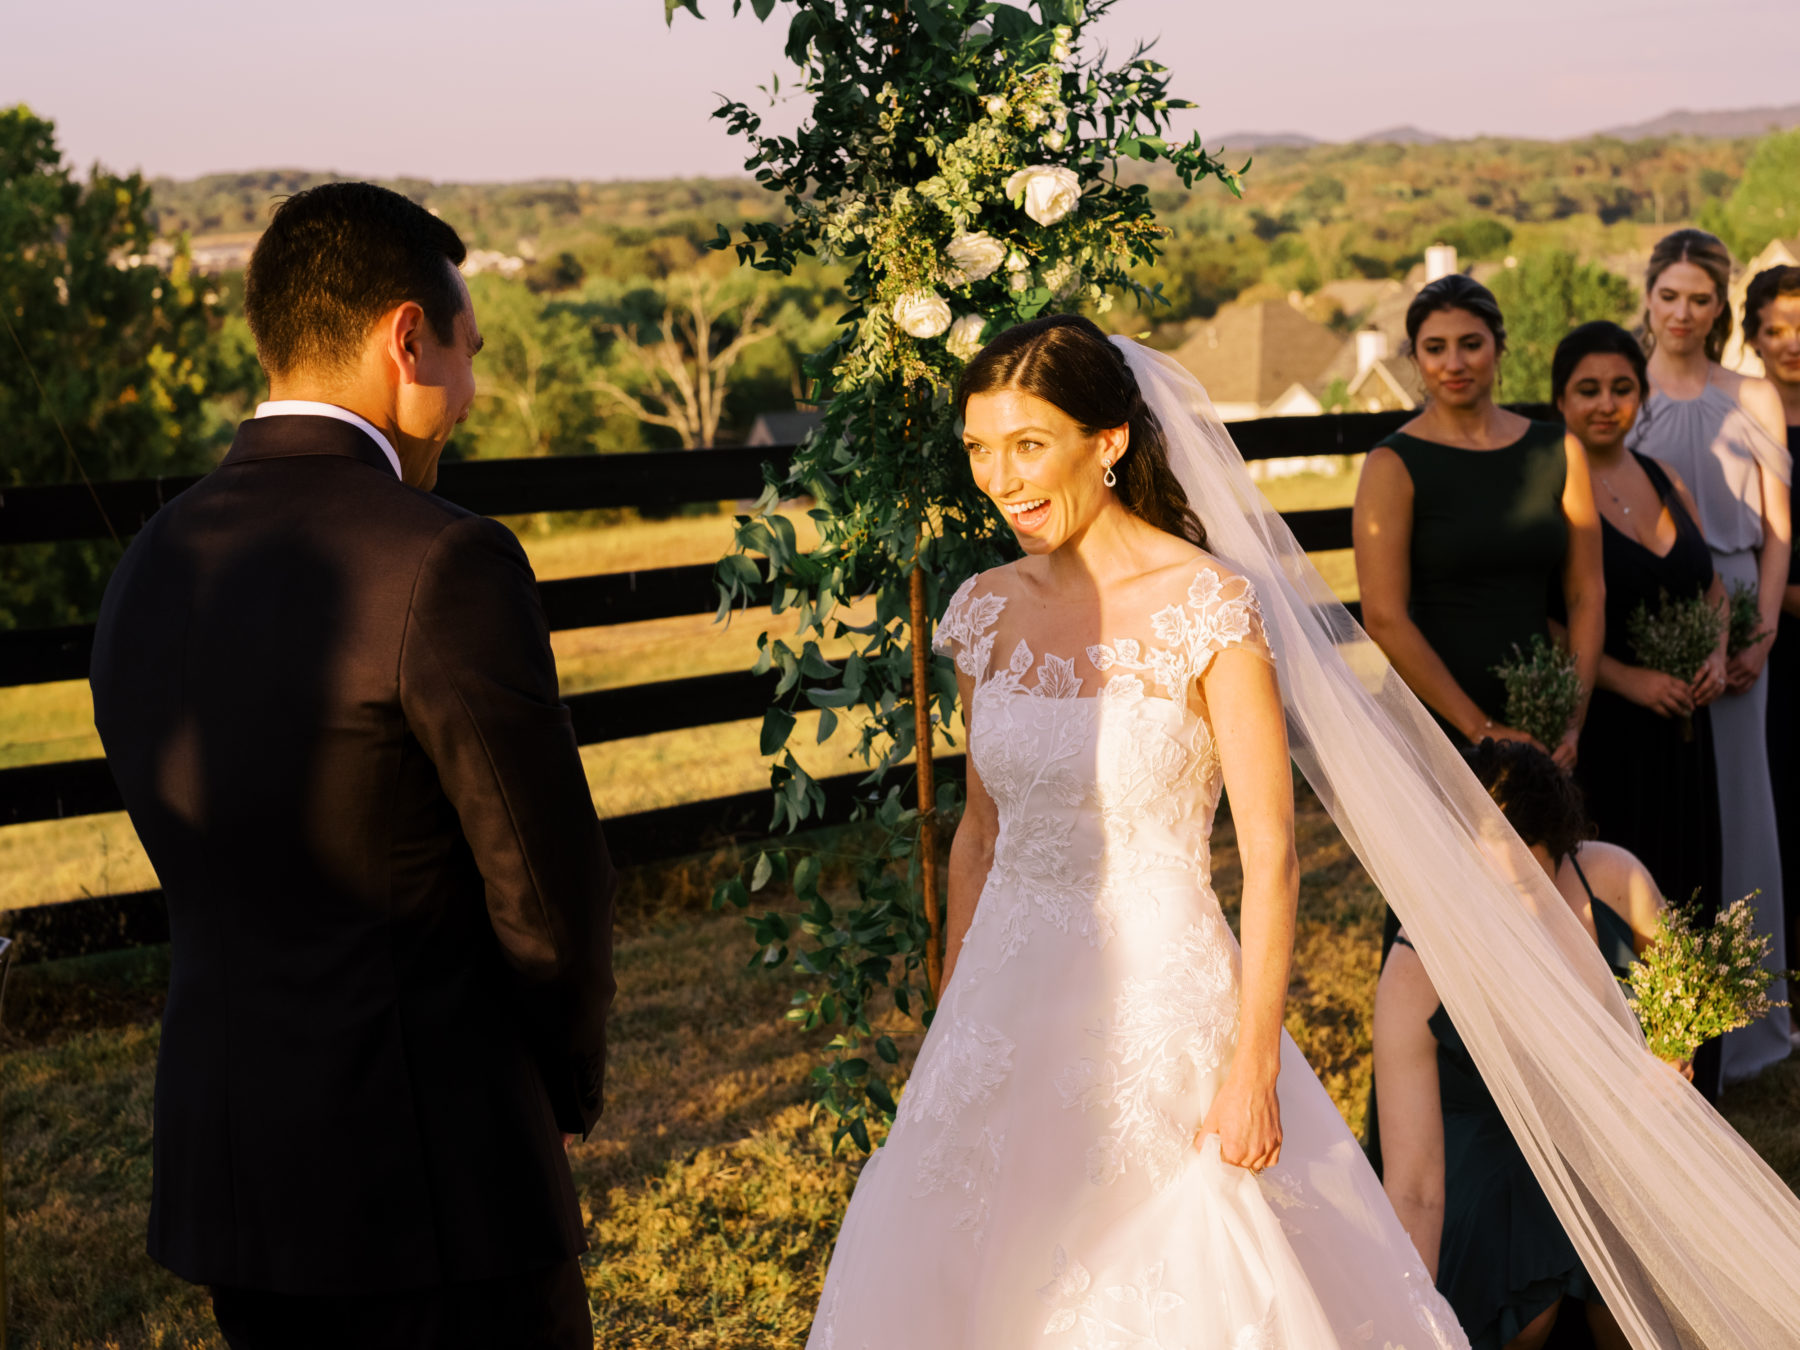 Outdoor wedding ceremony at Autumn Crest Farm